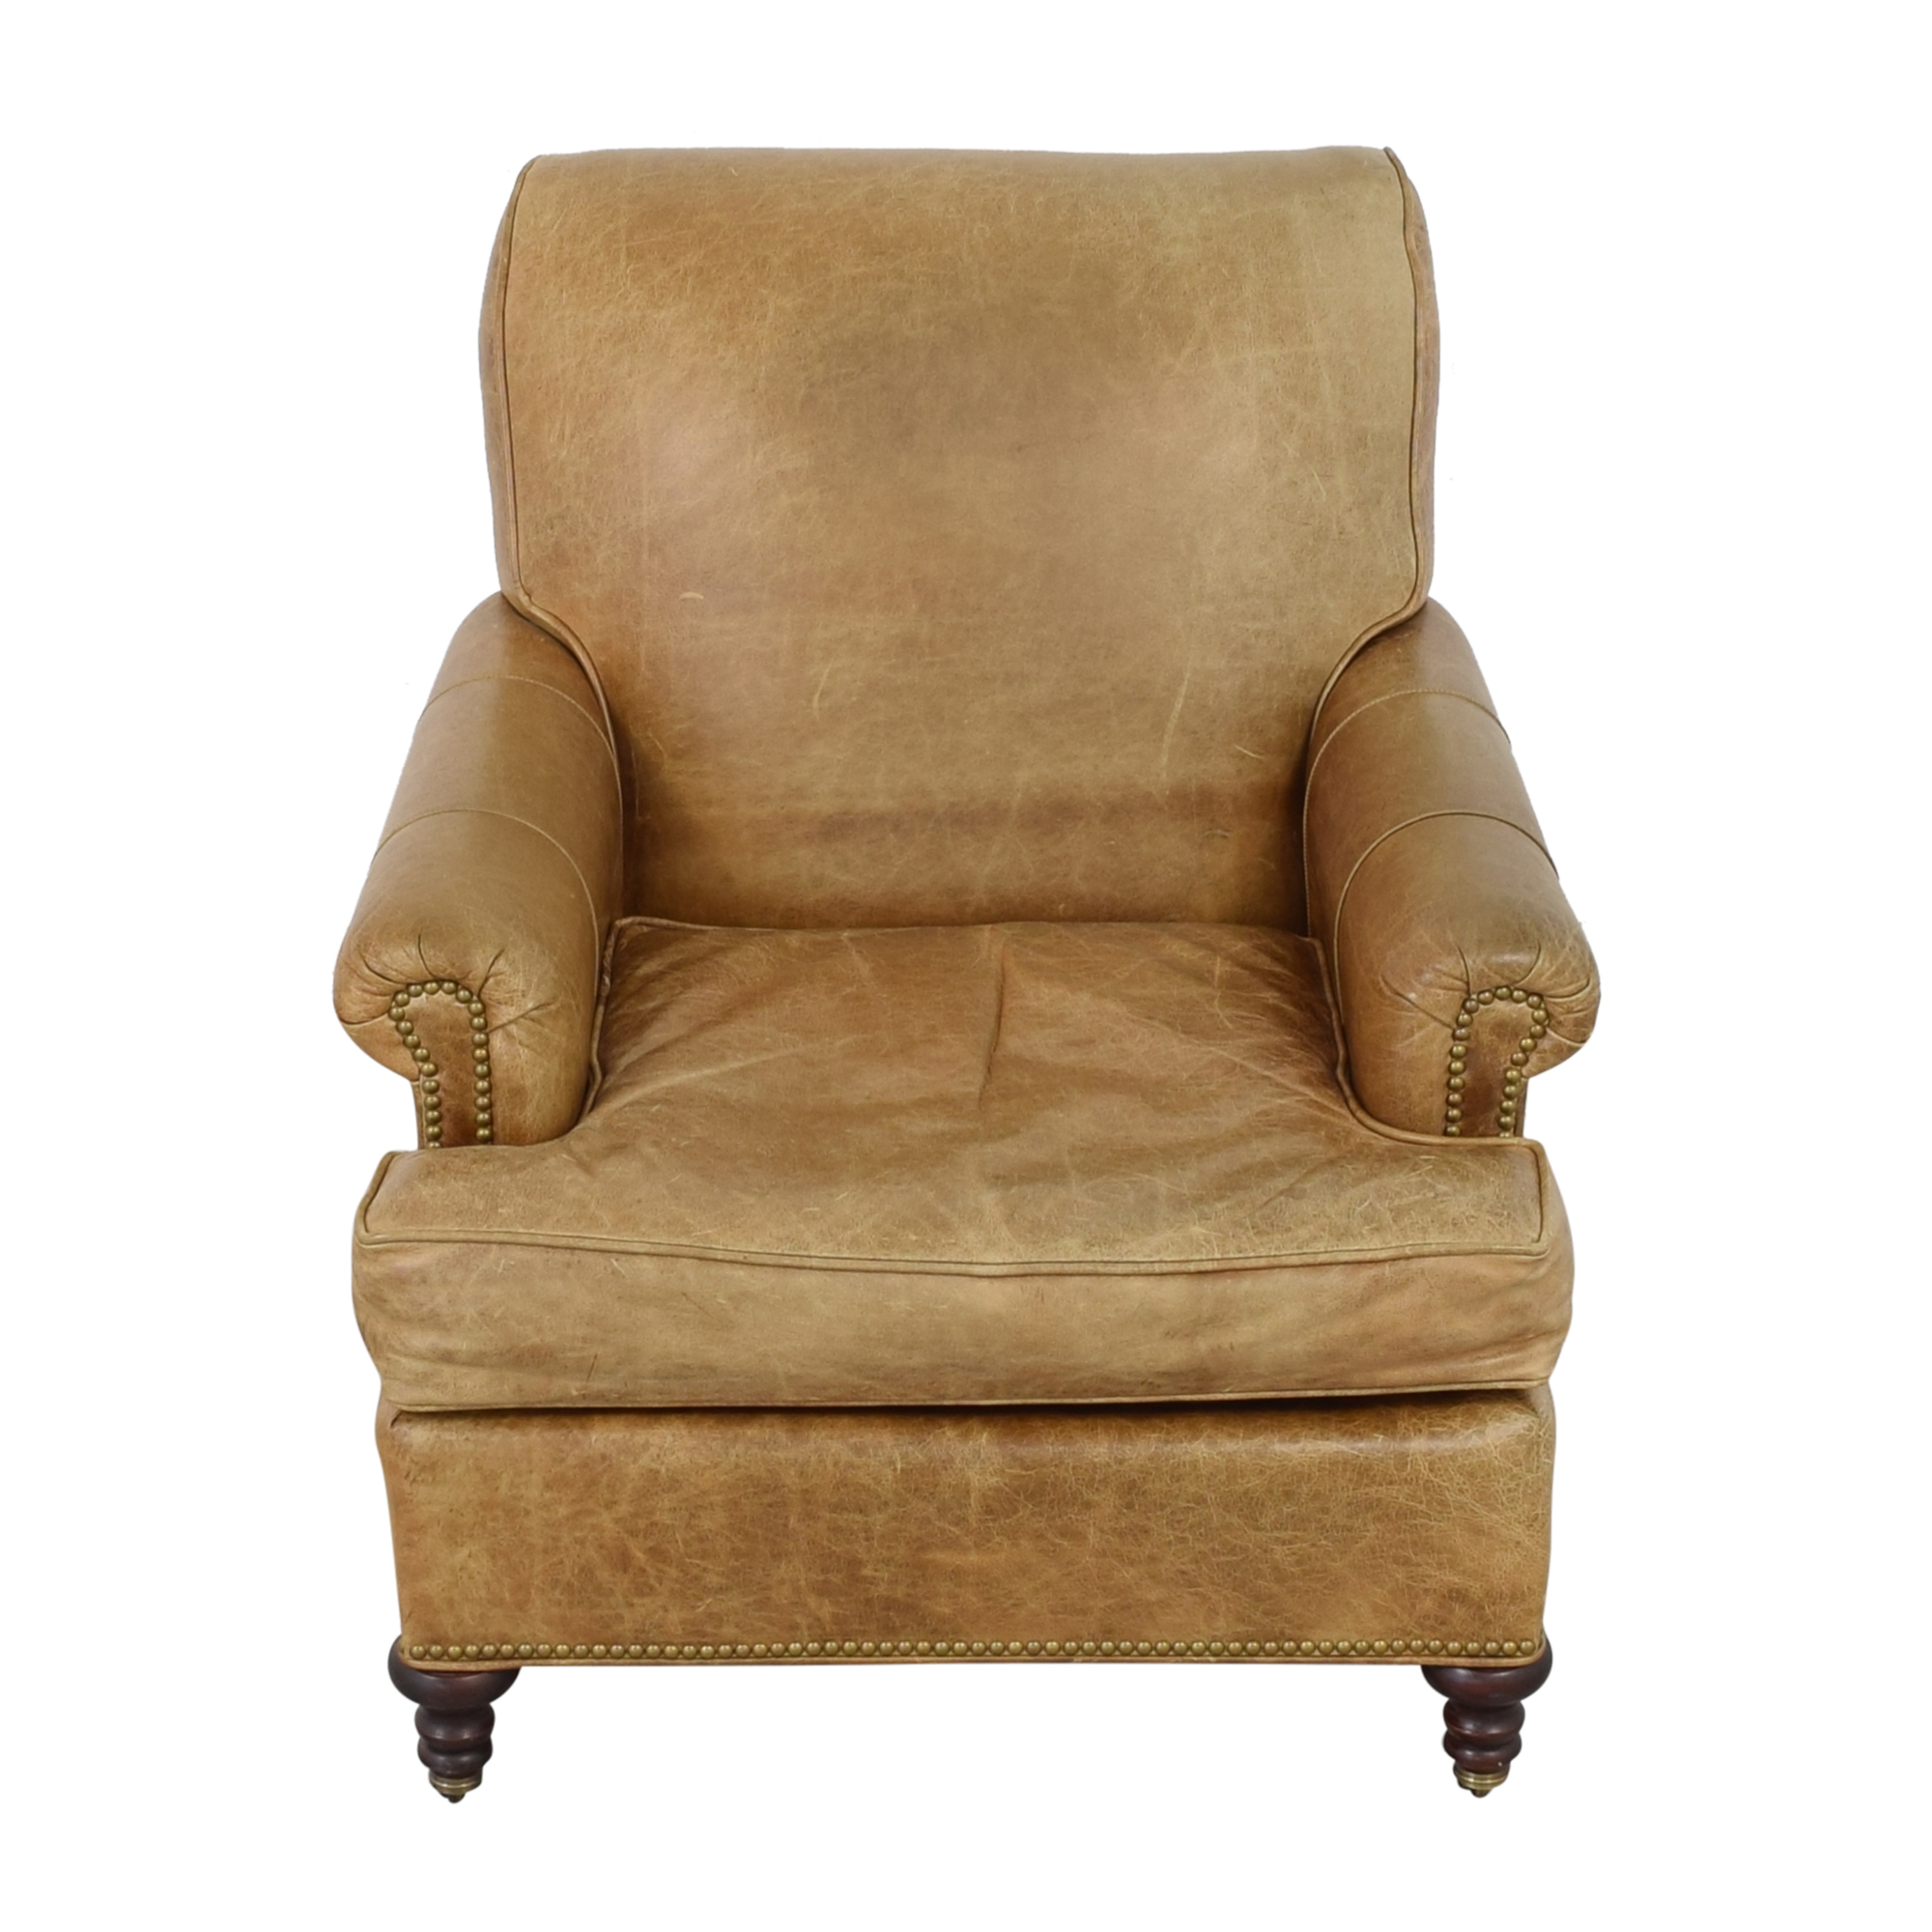 Burke Decor Southwood Club Chair